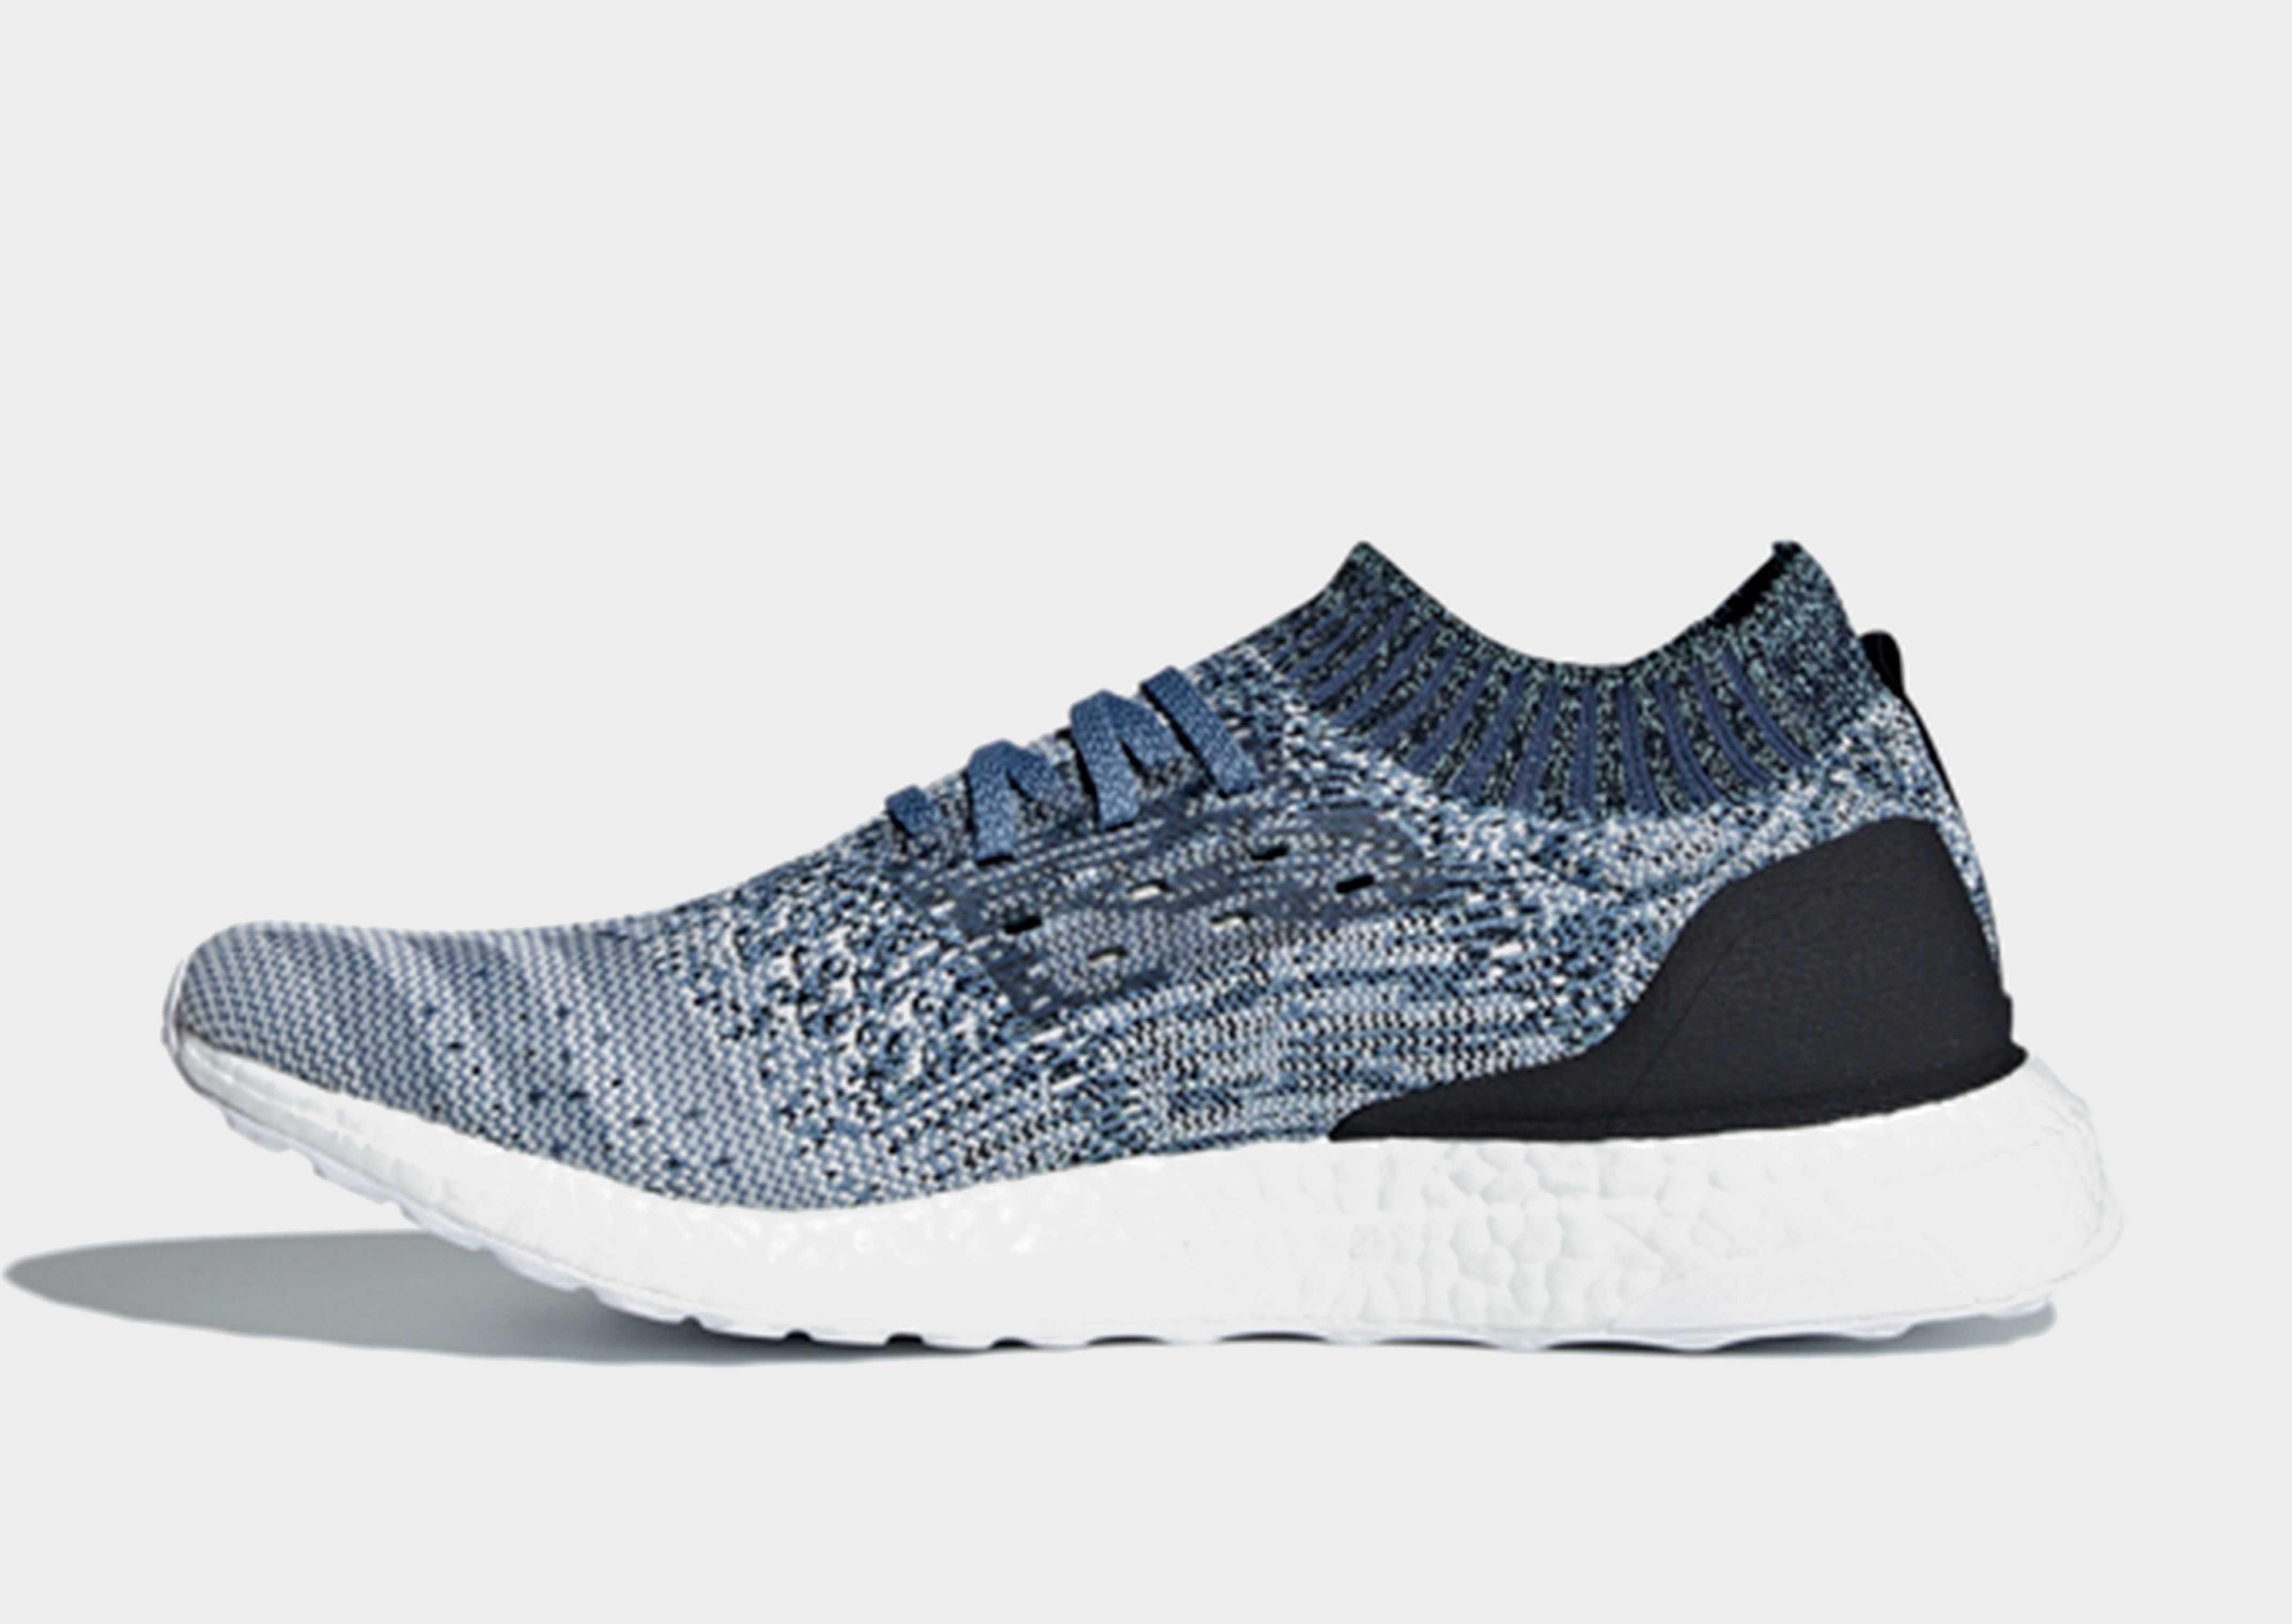 f26b04ece01 ADIDAS Ultraboost Uncaged Parley Shoes